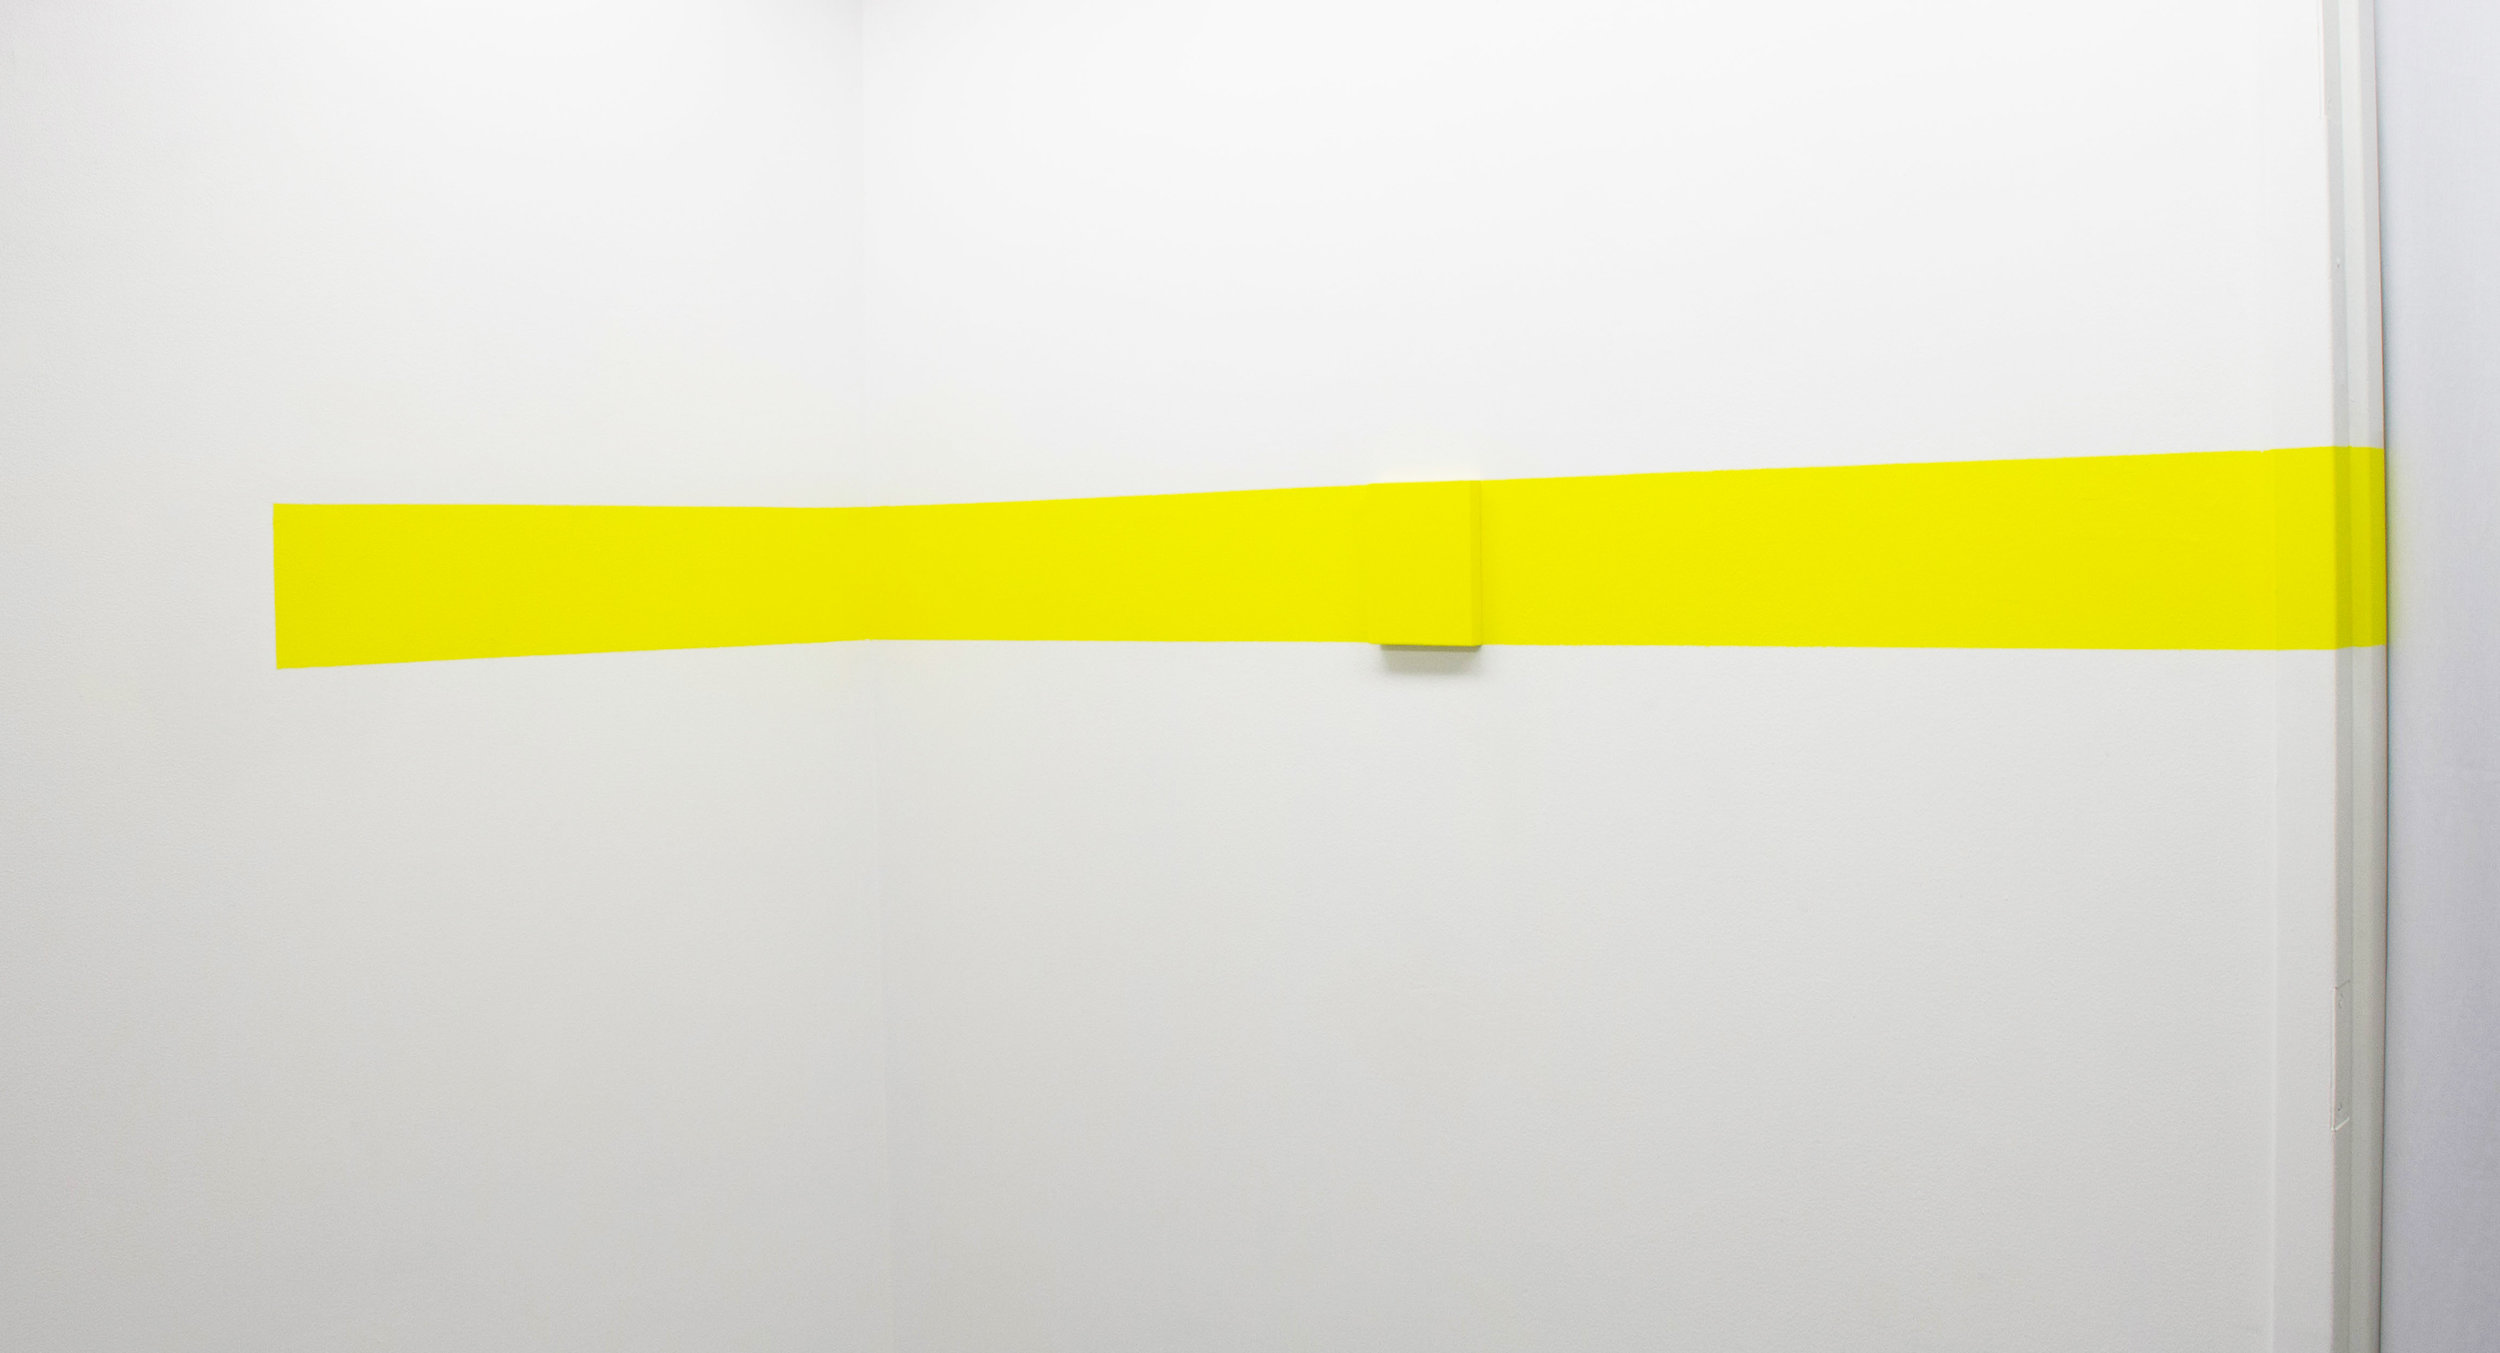 "Horizontal Corner Y,  2016, Flashe and wood, 6 1/2"" x 98 1/4"" x 3/4"""